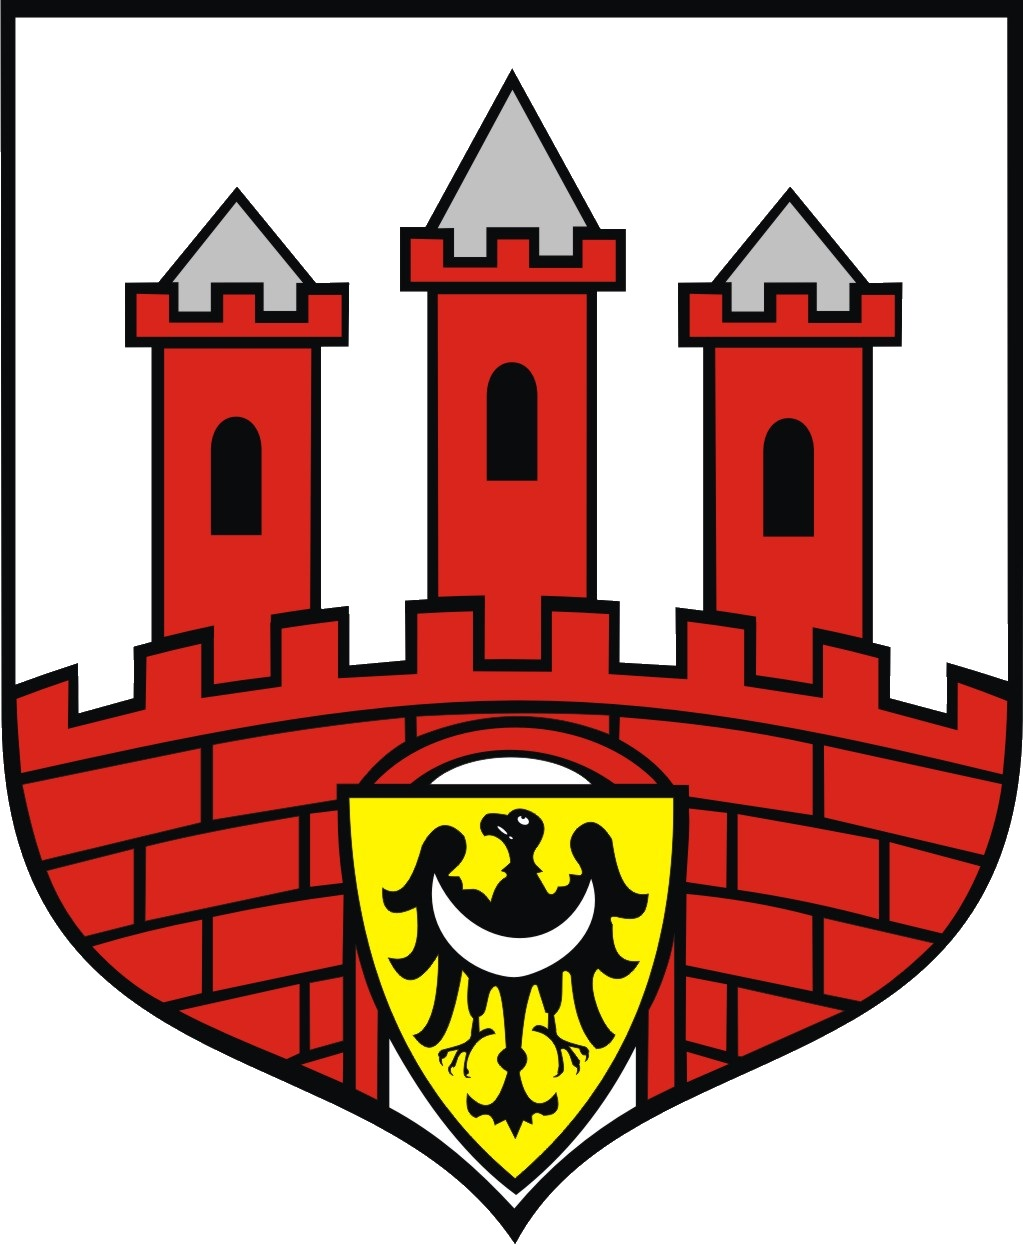 http://revival.ioer.eu/fileadmin/user_upload/revival/logos/Boleslawiec_Wappen_JPEG_trans.jpg